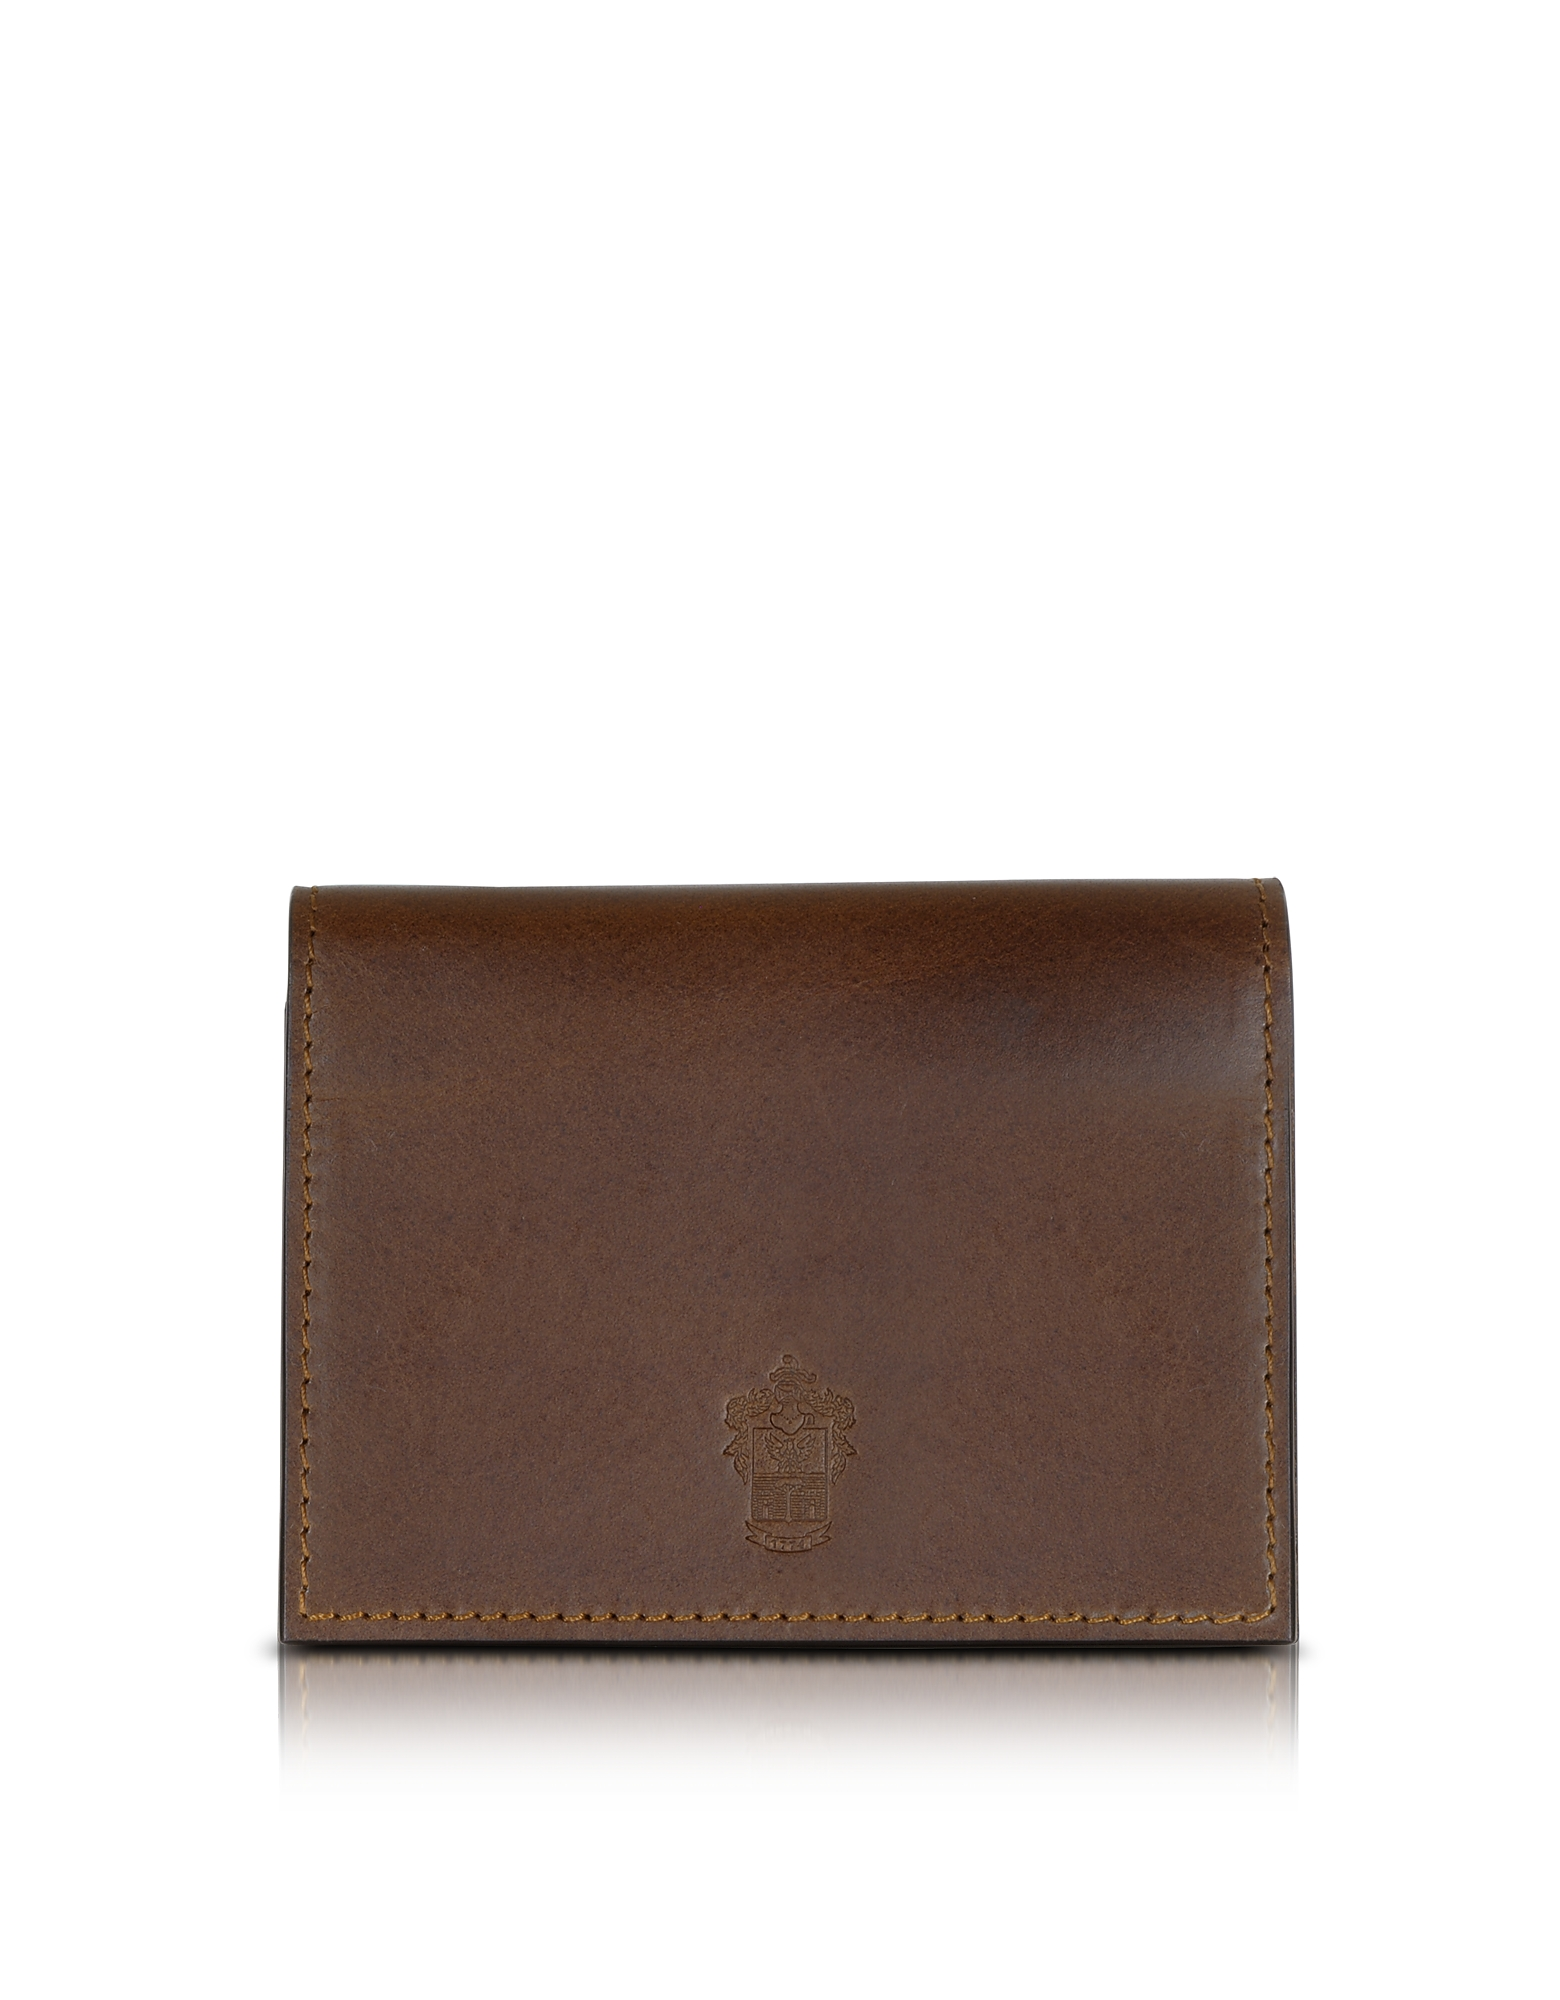 Pineider Wallets, Power Elegance Double Dark Brown Leather Card Holder